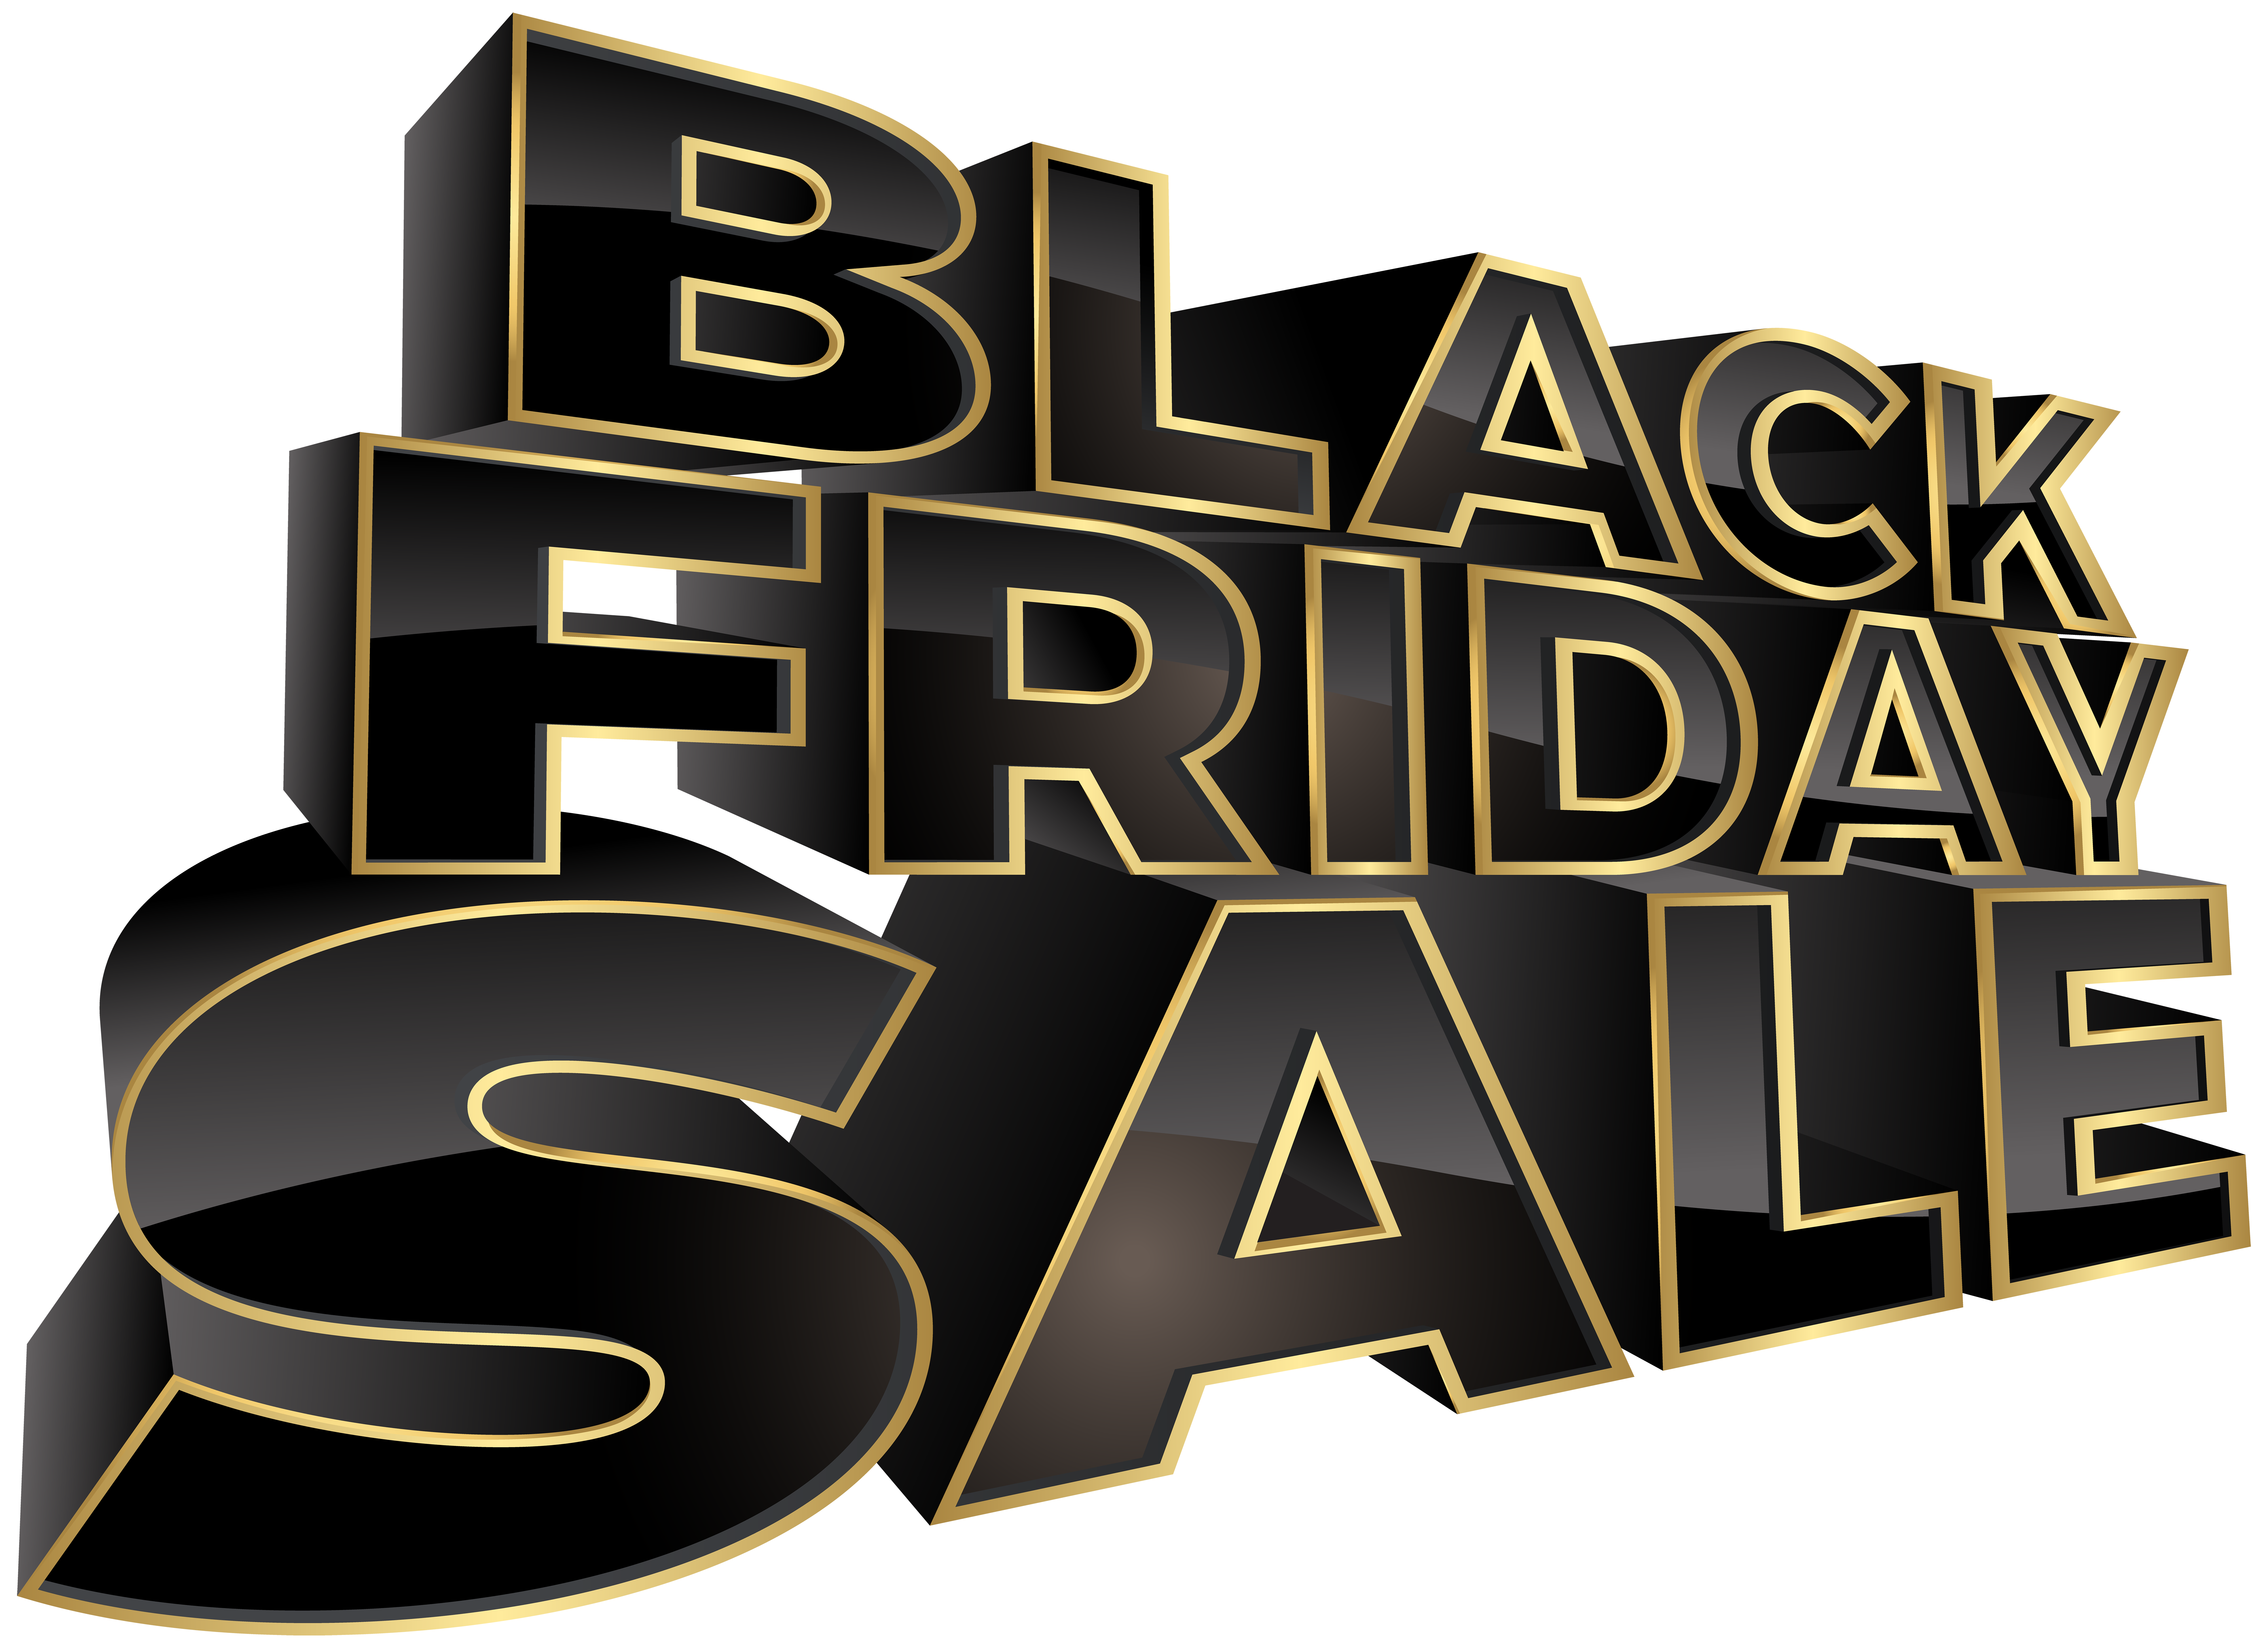 Sale clip art image. Black friday png banner royalty free library